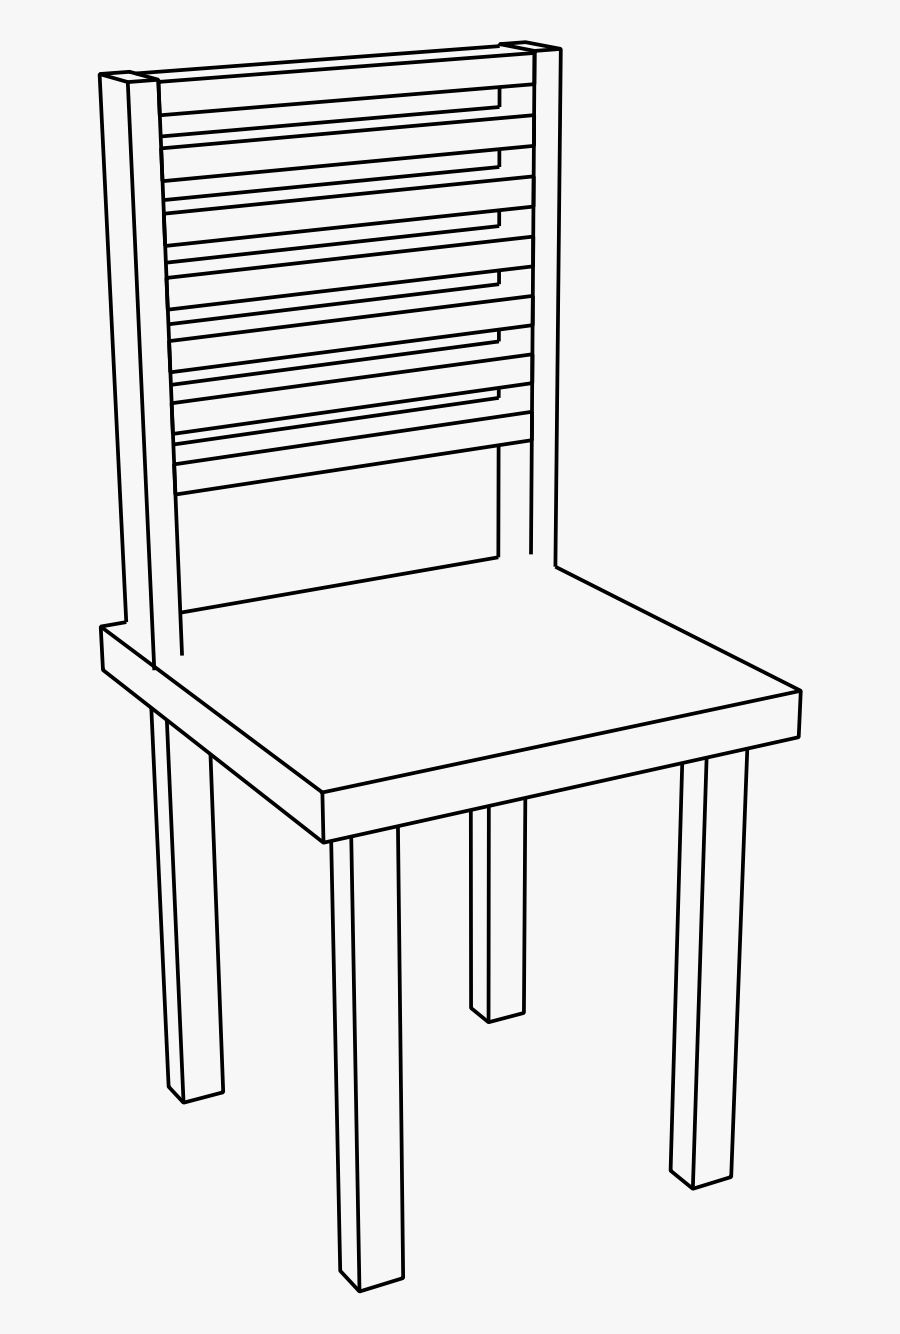 Clipart Chair Ideas In 2020 Chair Art Chair Furniture Chair